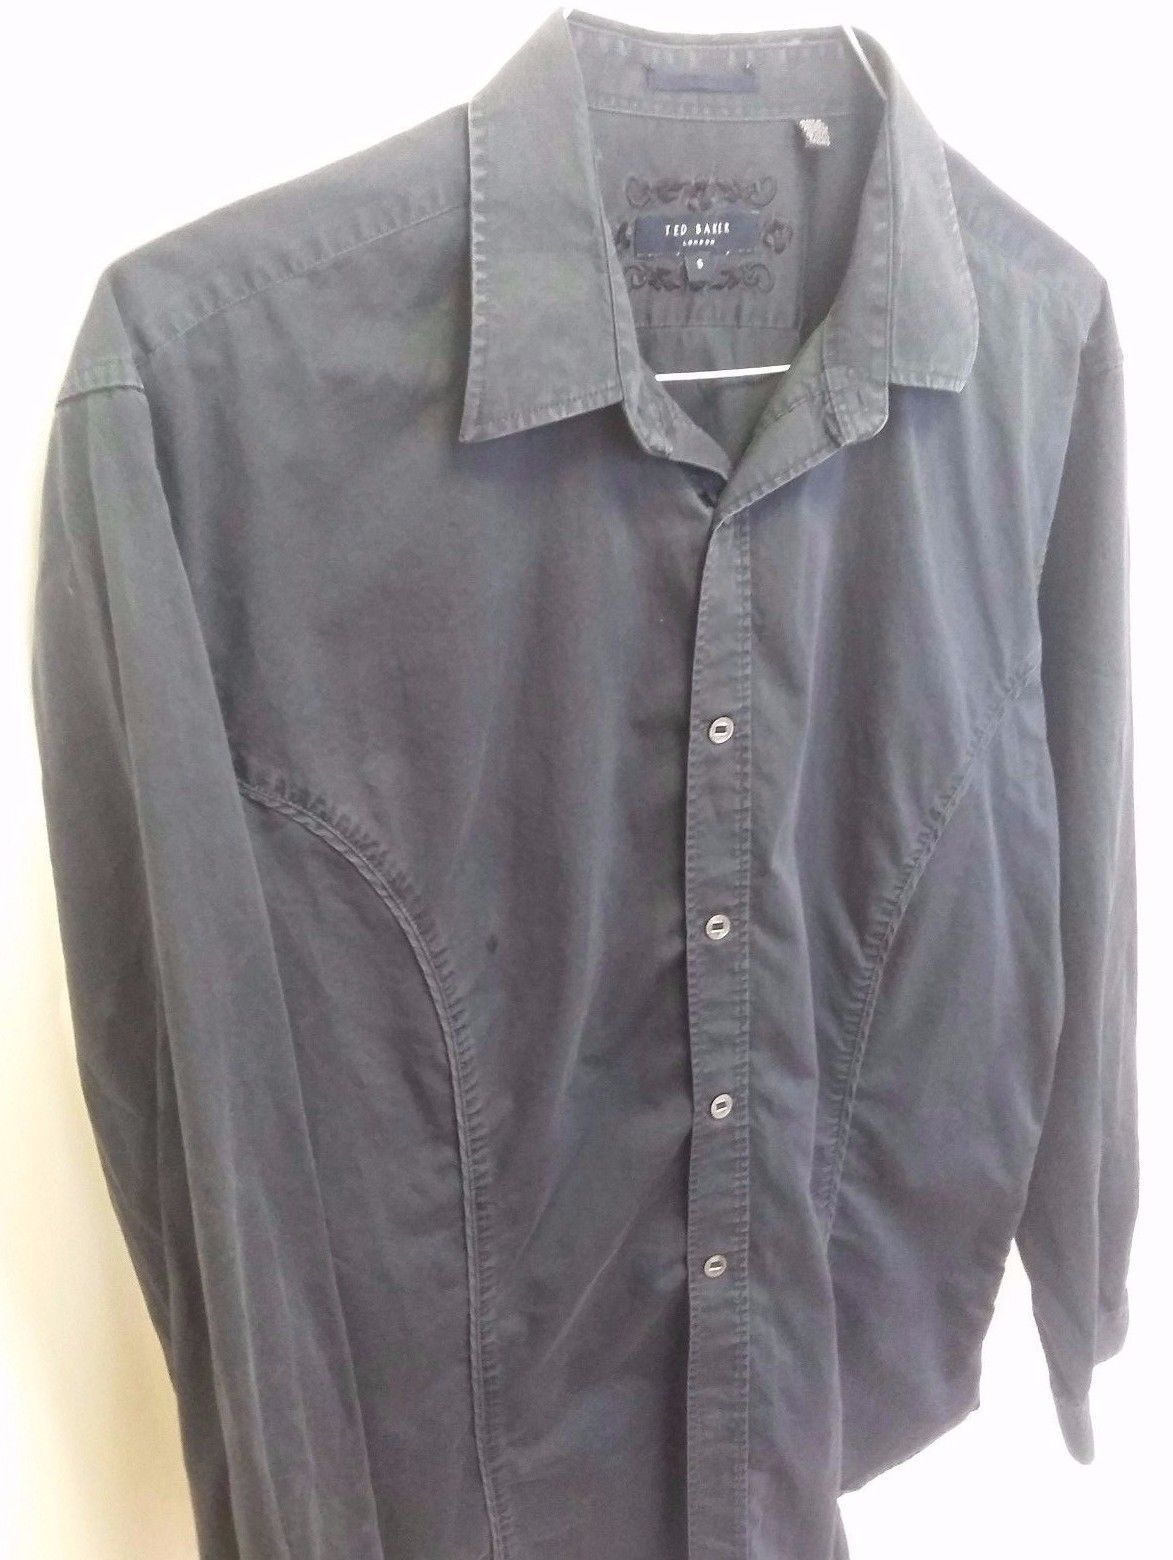 Ted Baker Shirt Size 5 Navy Blue Button Down Long Sleeve